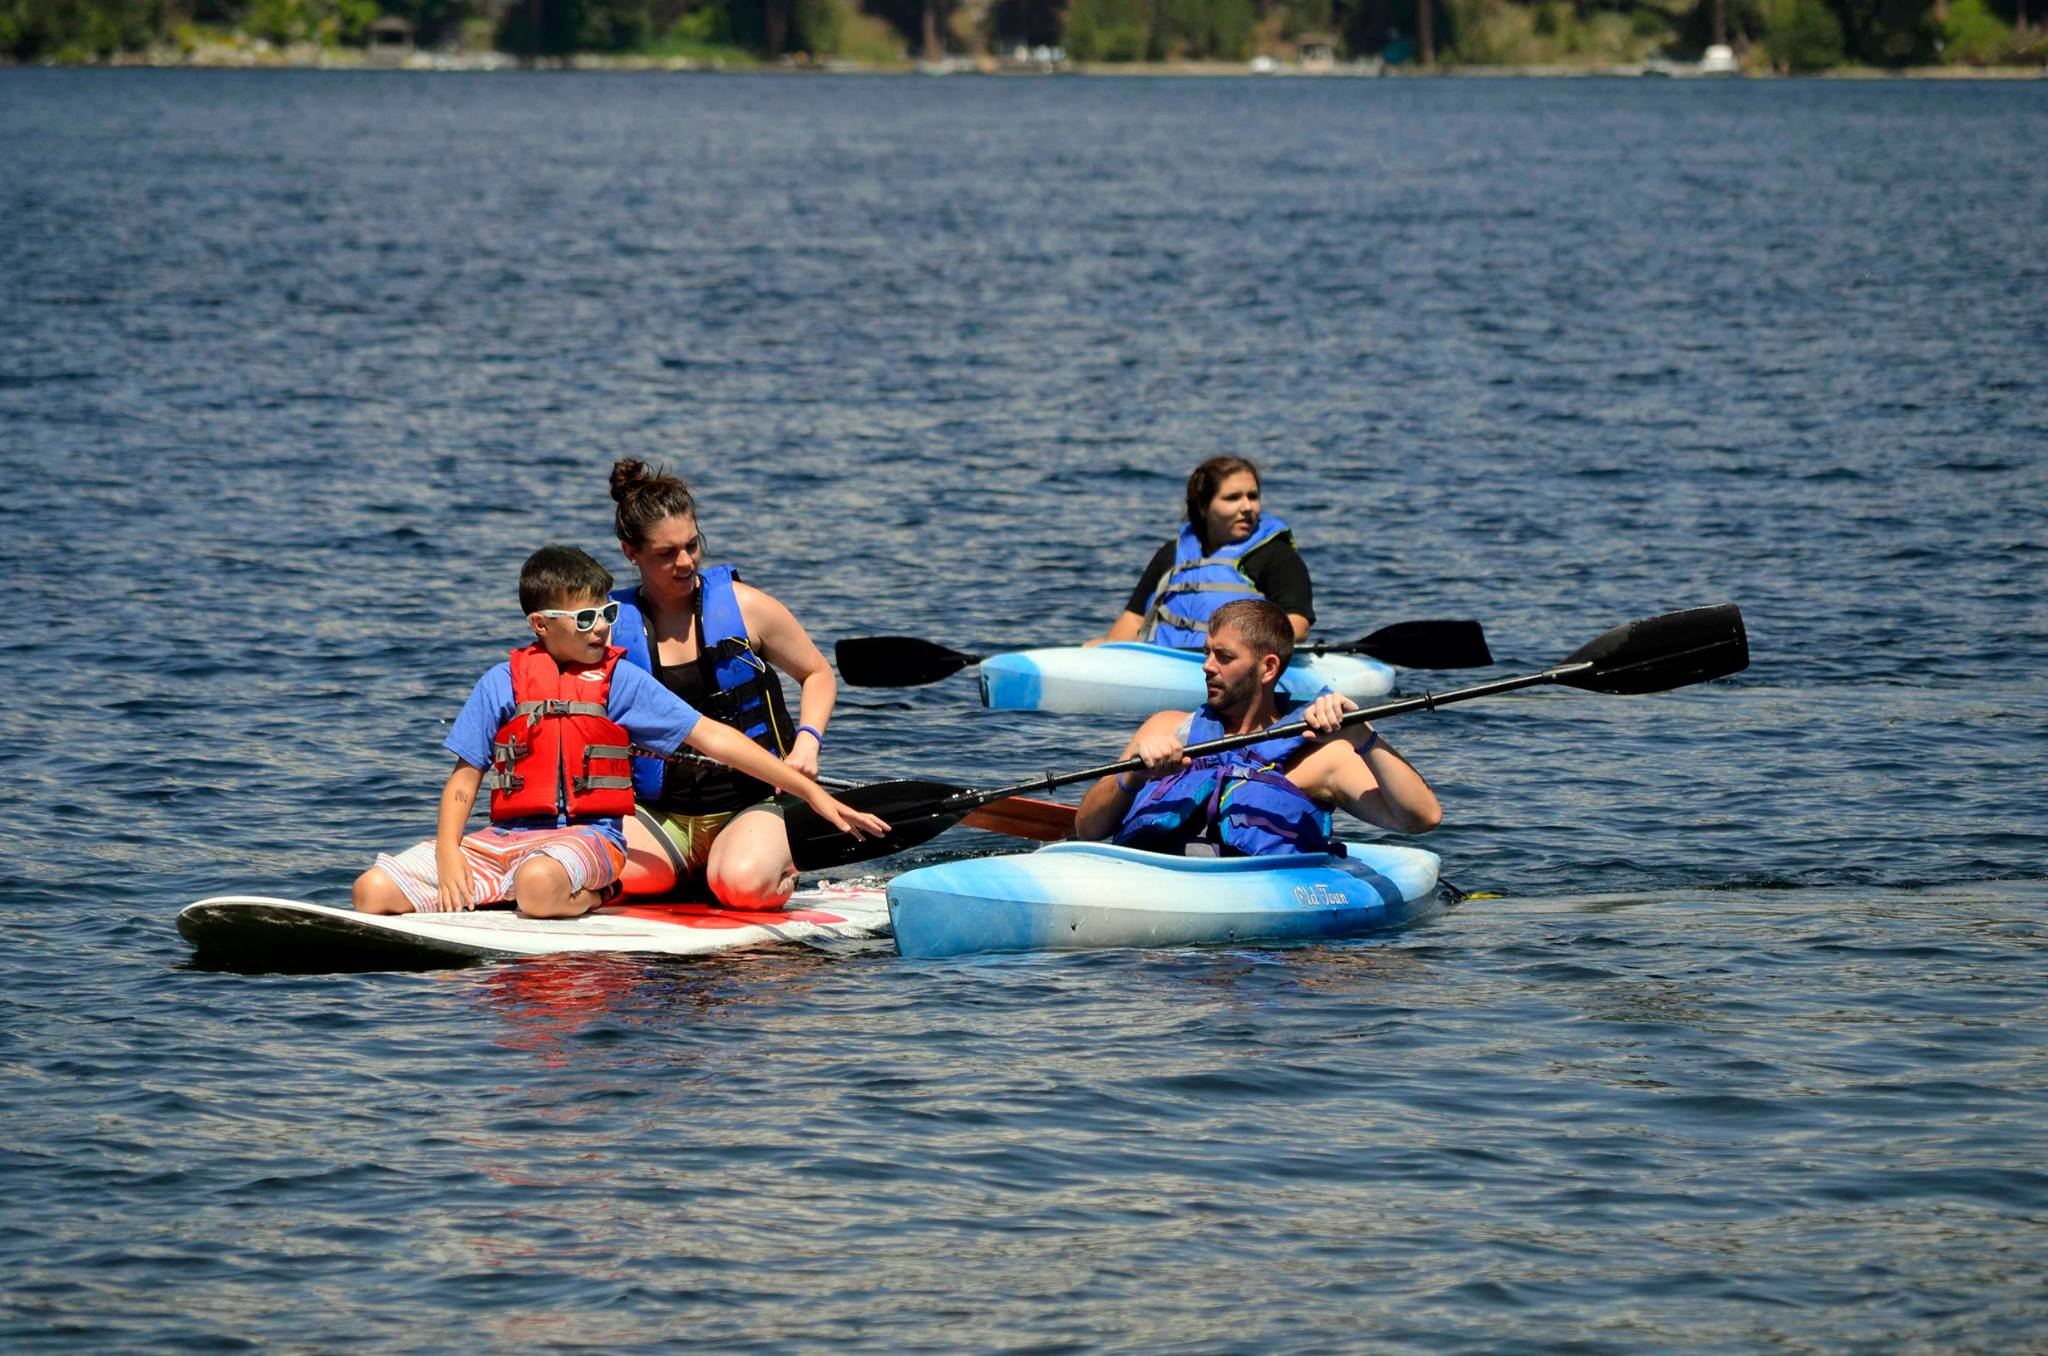 The campers spend two days swimming/ participating in water activities if they feel comfortable, at the Cascade camp. Courtesy: Camp River Run